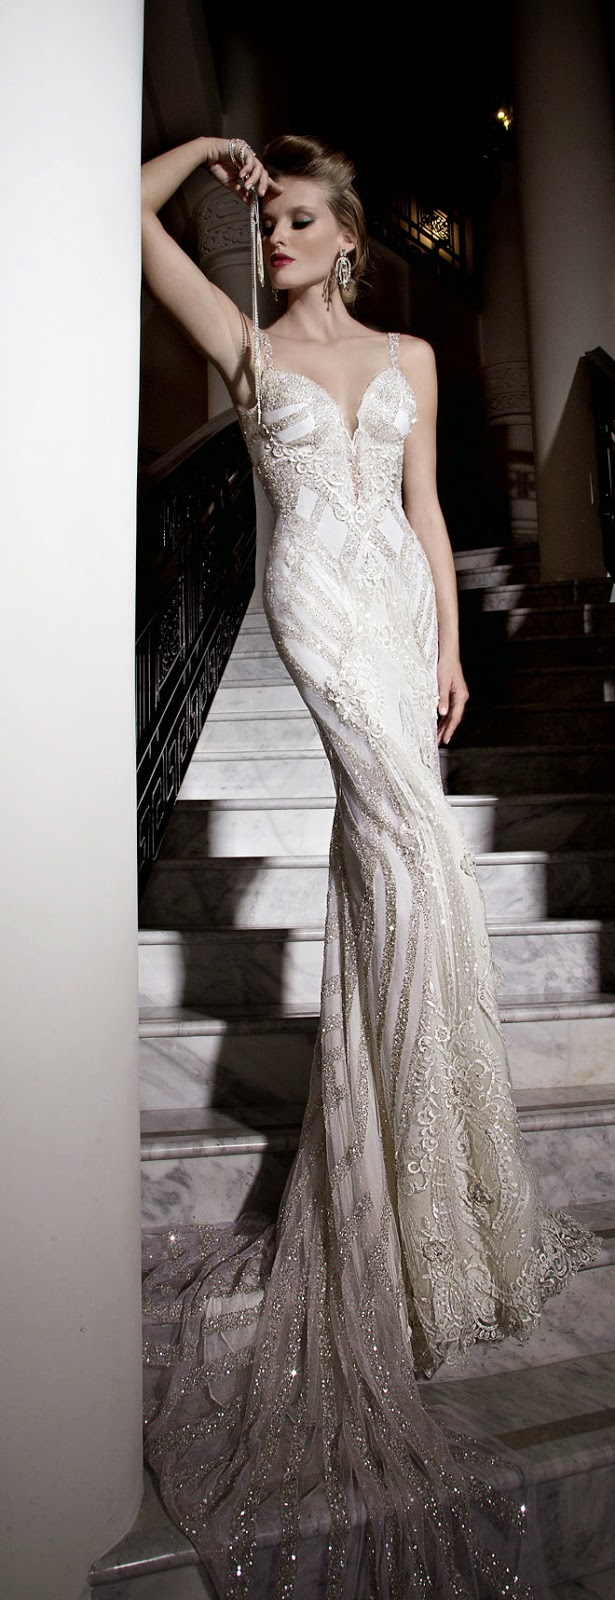 Galia lahav tales of the jazz age bridal collection Wedding dress designer galia lahav